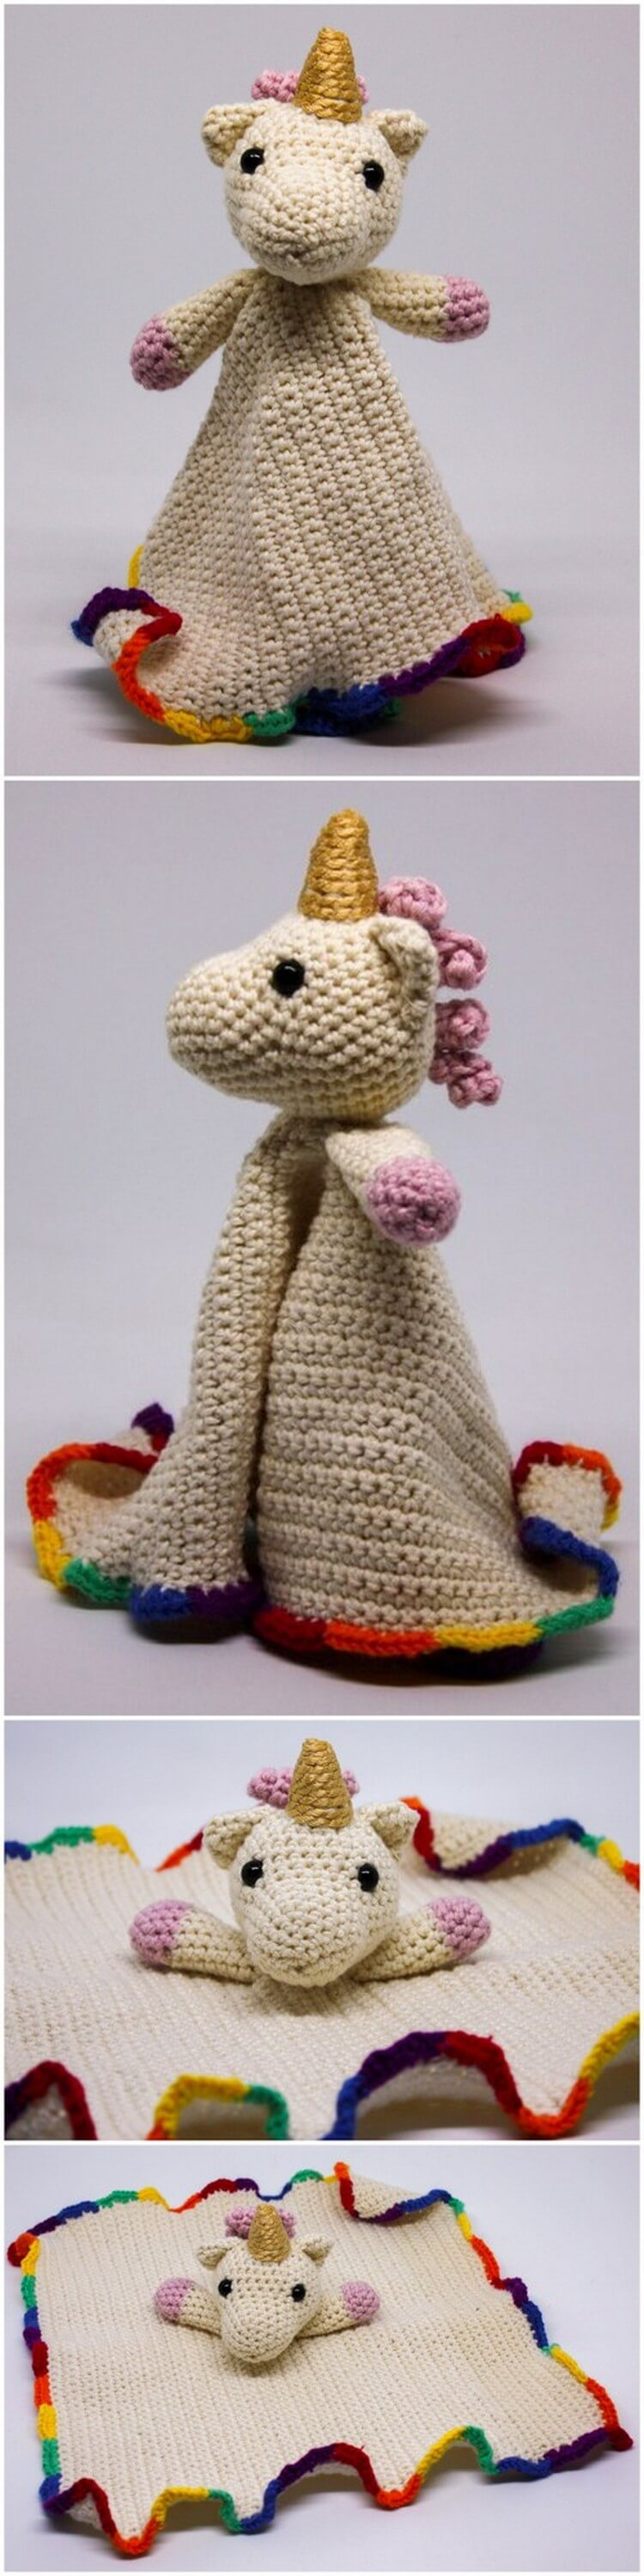 Crochet Unicorn Pattern (19)